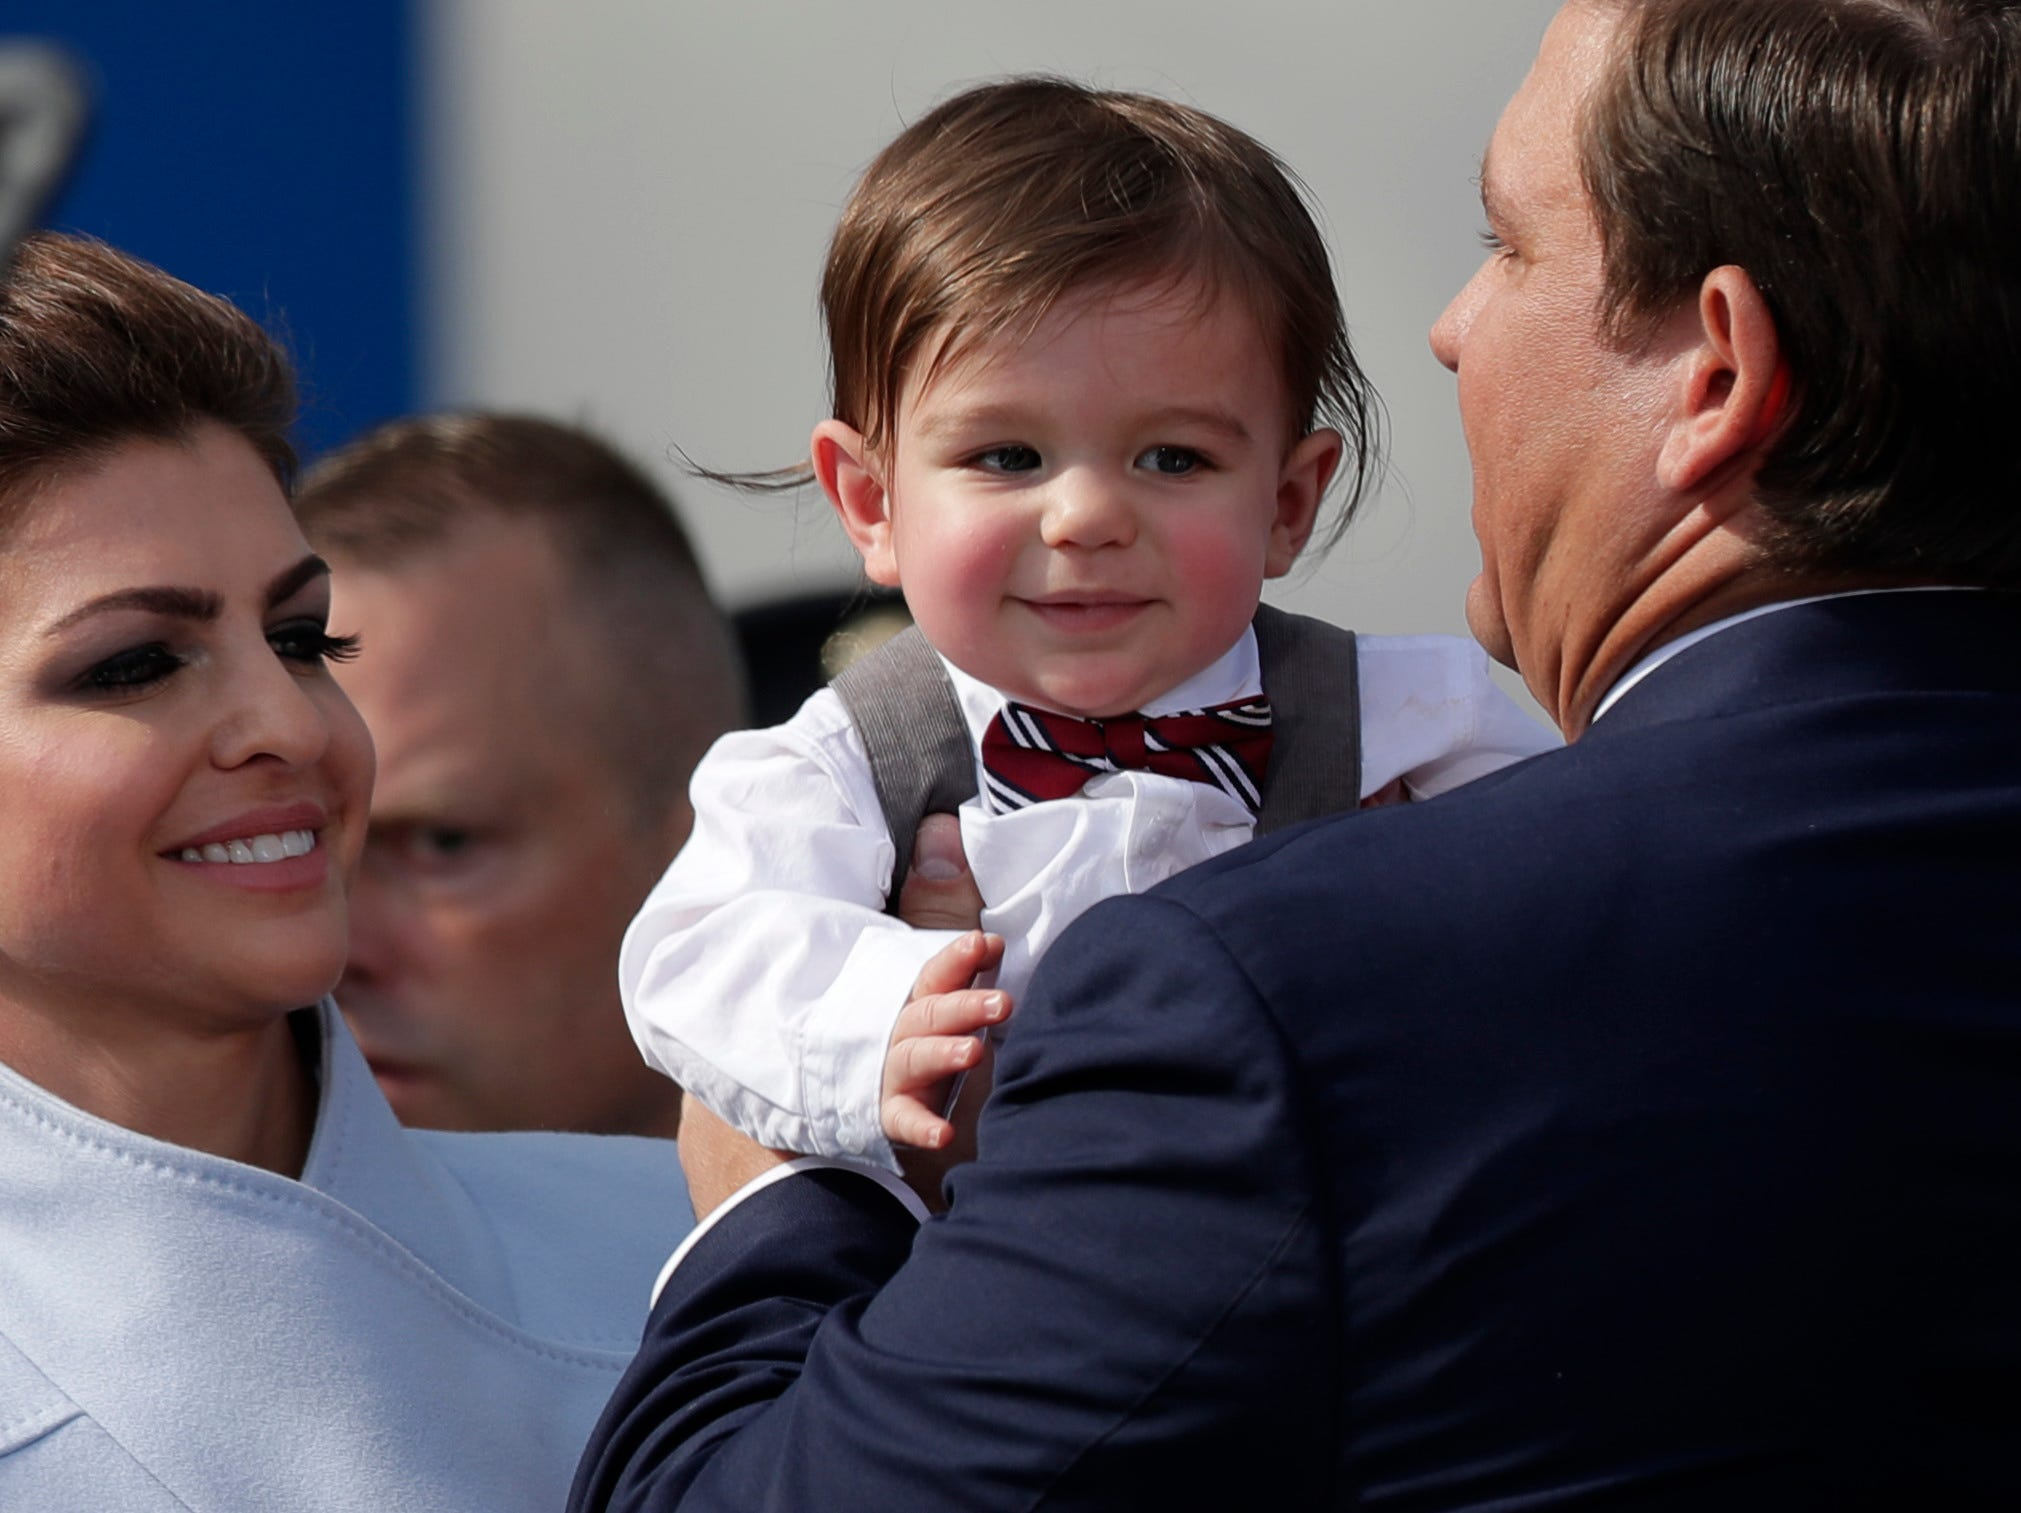 First lady Casey DeSantis passes her son Mason DeSantis to her husband Gov. Ron DeSantis during the 2019 inauguration ceremony on the steps of the Historic Capitol Building in Tallahassee Tuesday, Jan. 8, 2019.